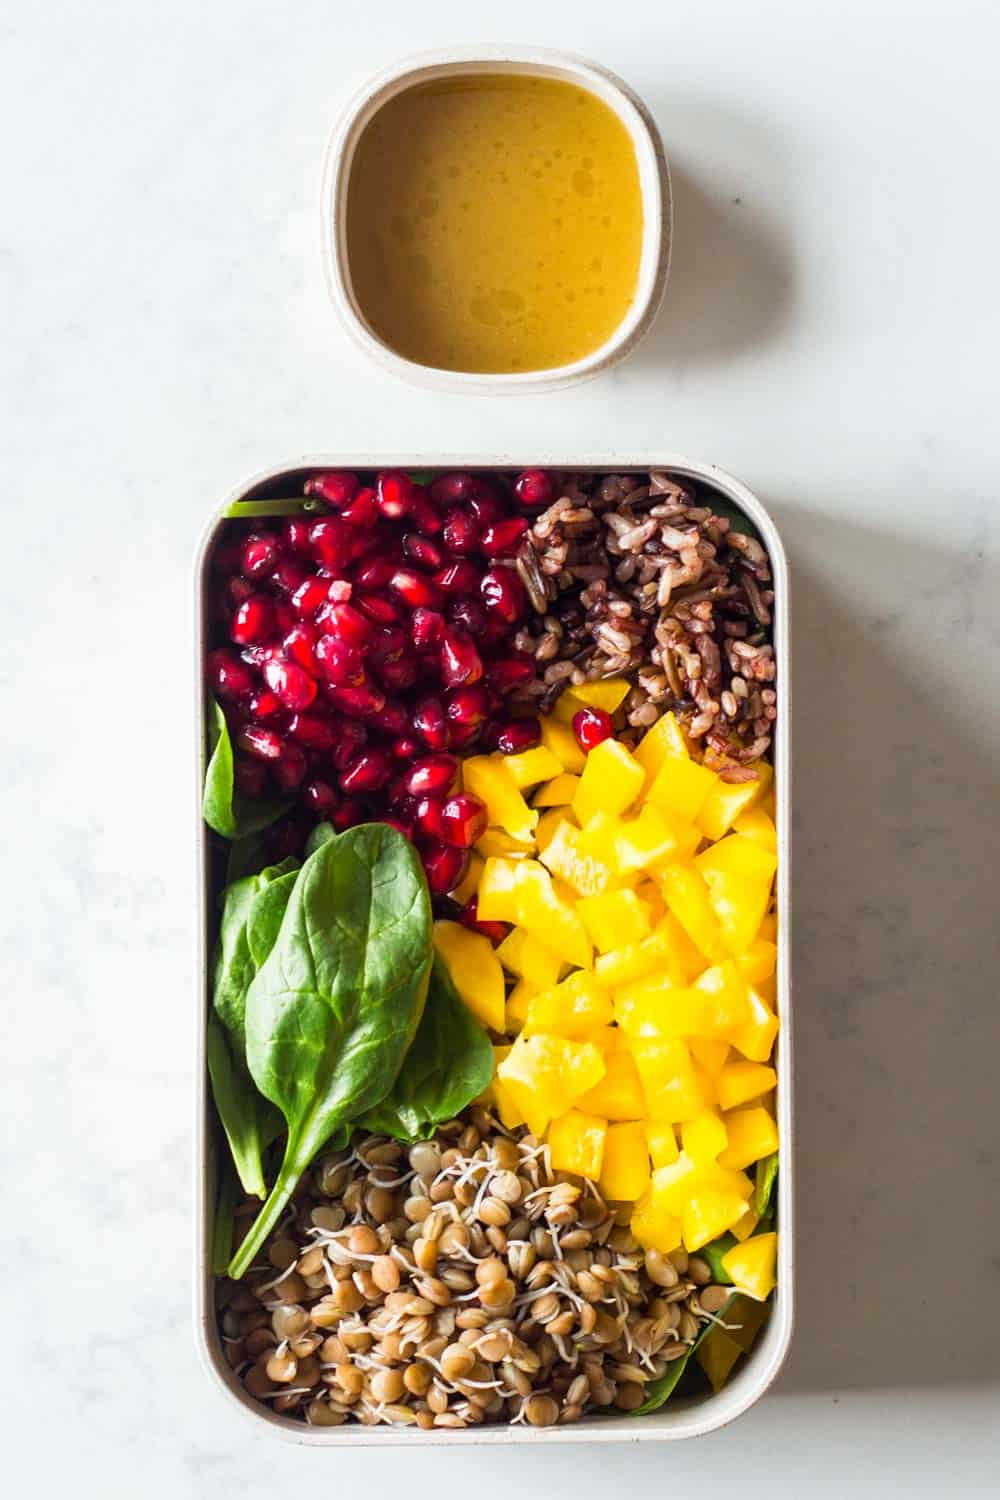 Meal prep container filled with baby spinach, cooked sprouted lentils, cooked wild rice blend, pomegranate seeds, chopped bell pepper and a homemade honey-mustard salad dressing on the side.